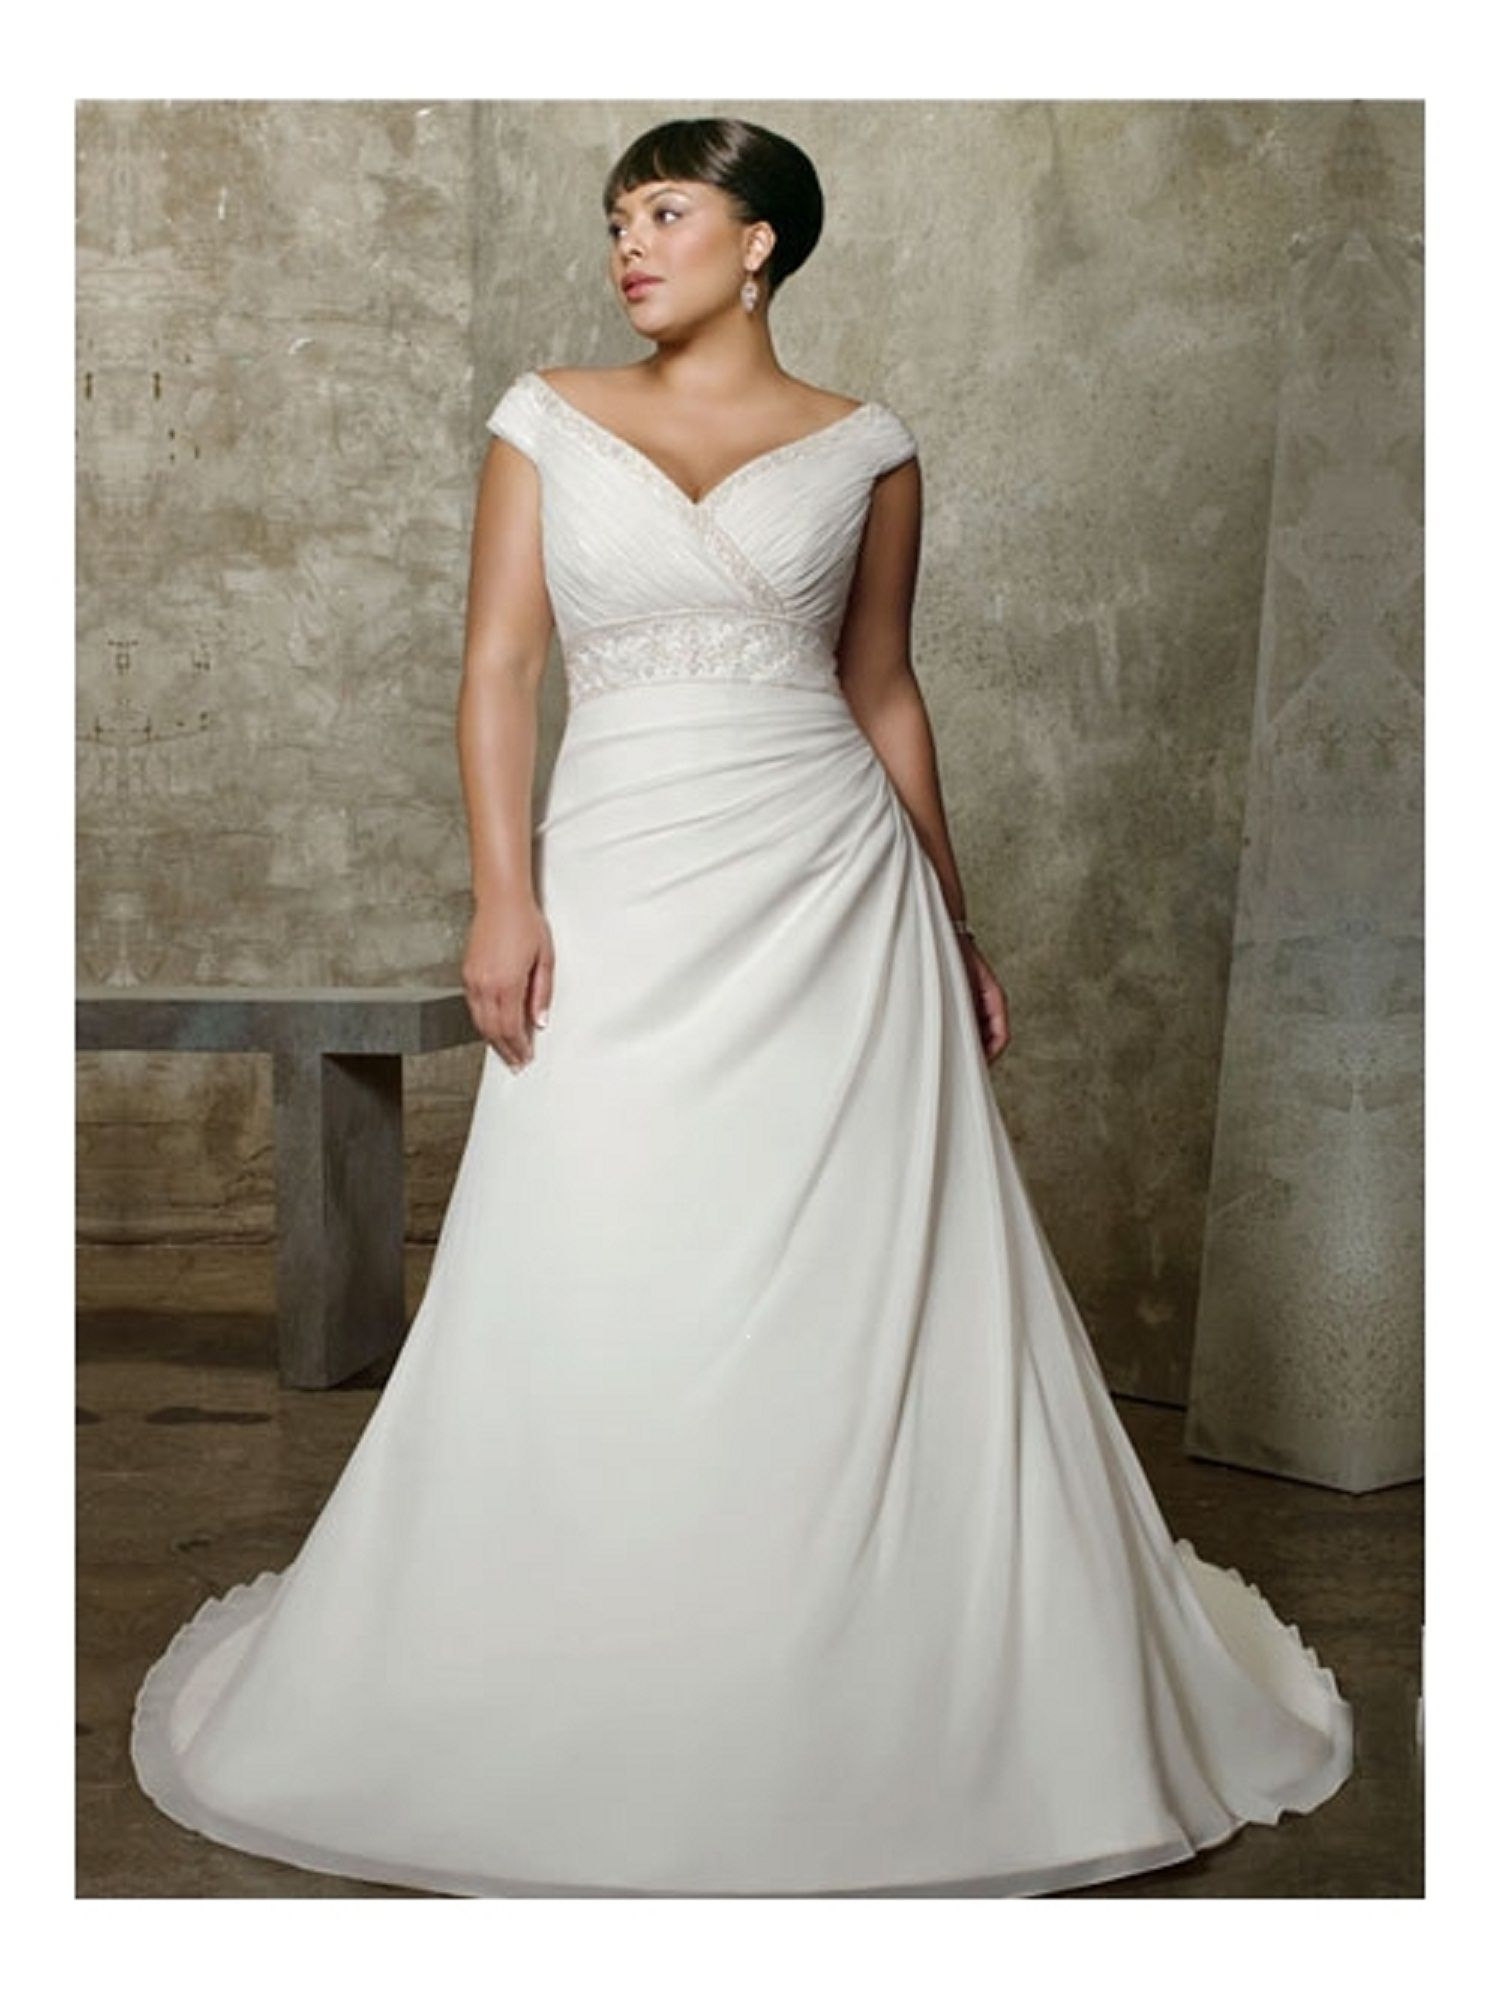 Wedding dresses for big busted women wedding dresses for for Wedding dresses for big busted women